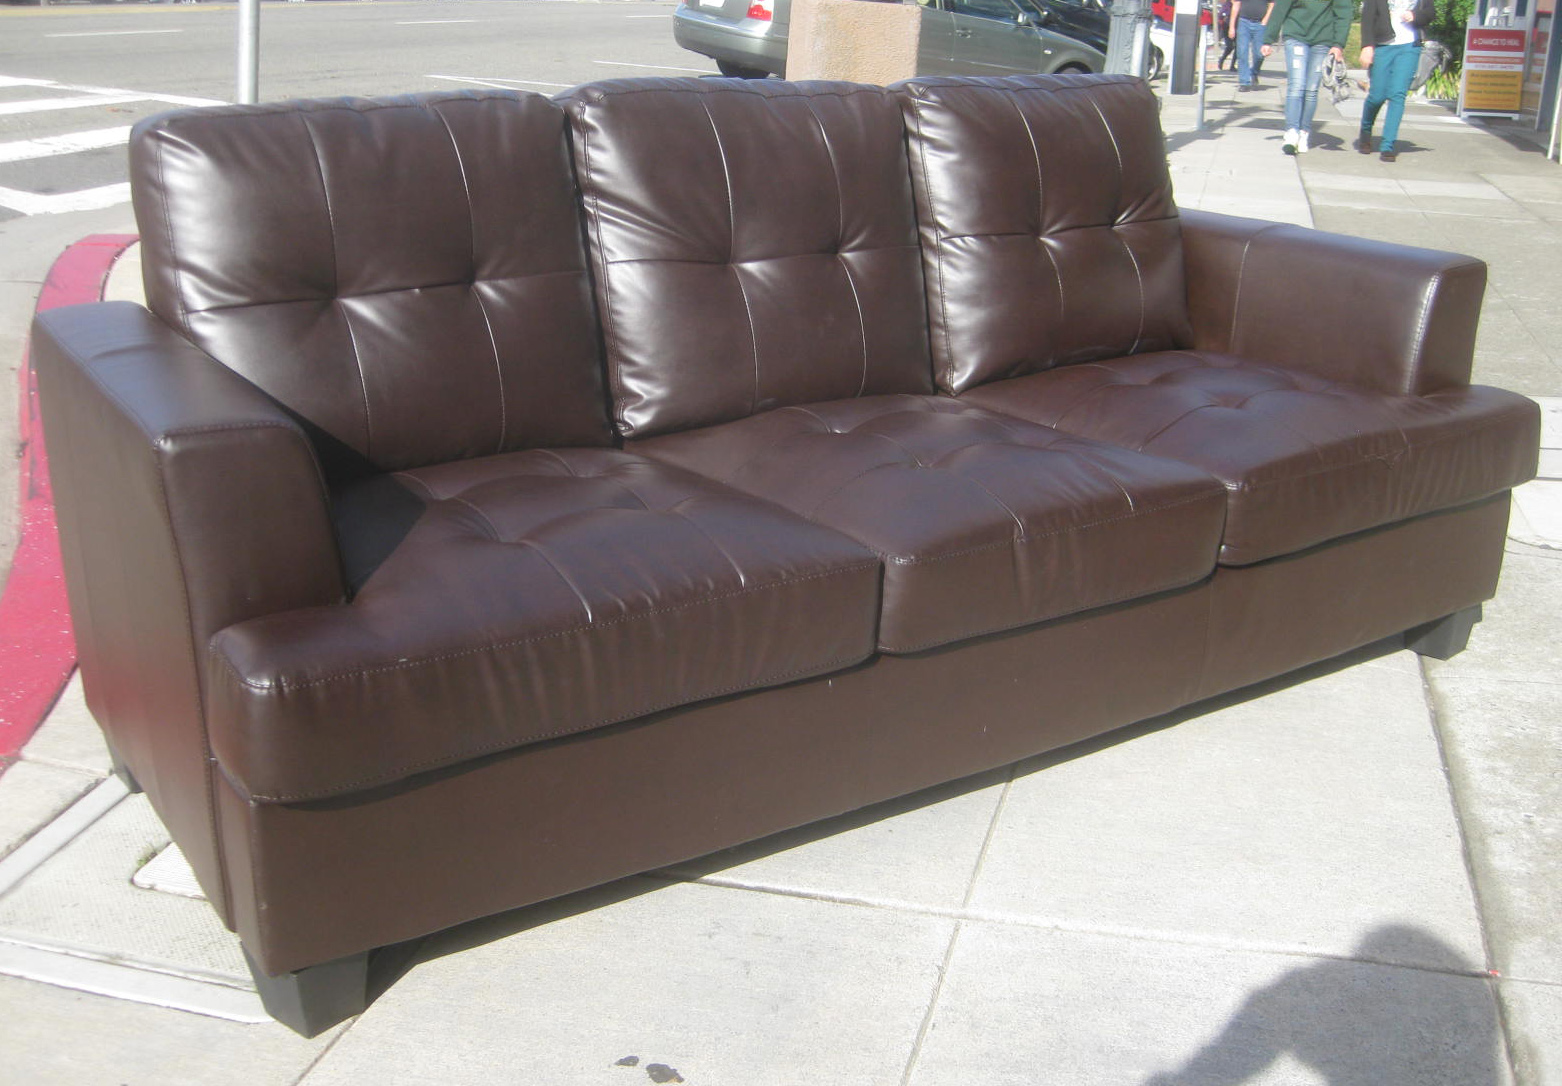 Where To Donate Sectional Sofa West Elm Leather Bed Uhuru Furniture & Collectibles: Sold - Espresso Pleather